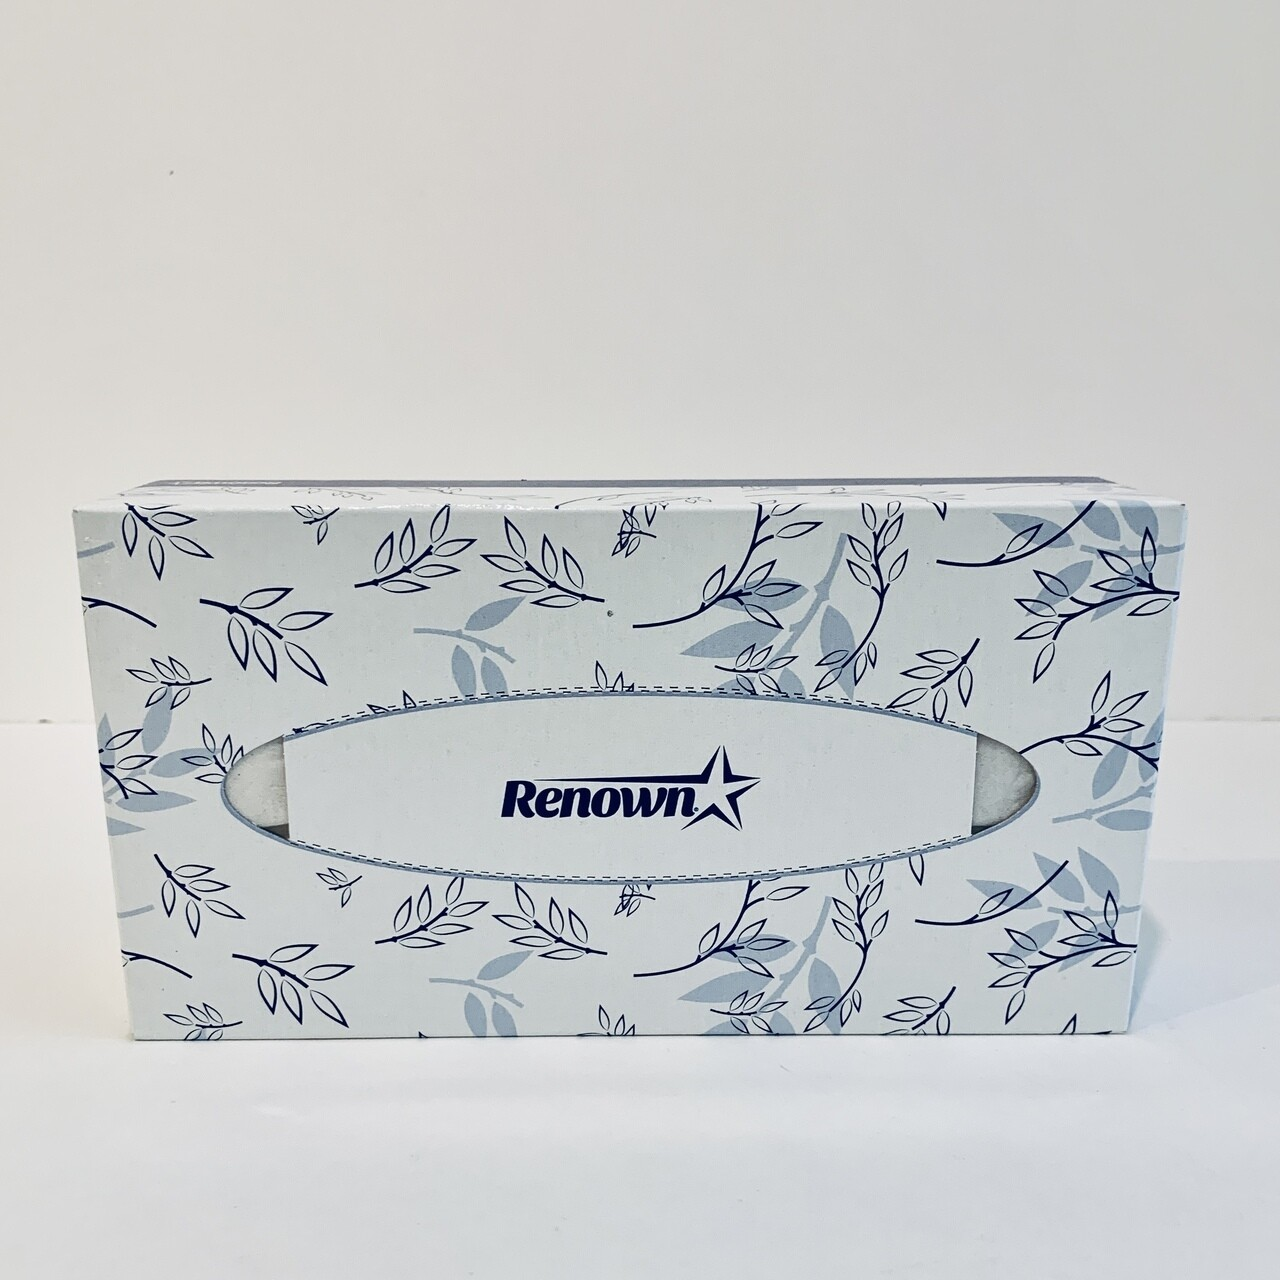 100% Recycled Facial Tissue - 100 Sheet 2-Ply